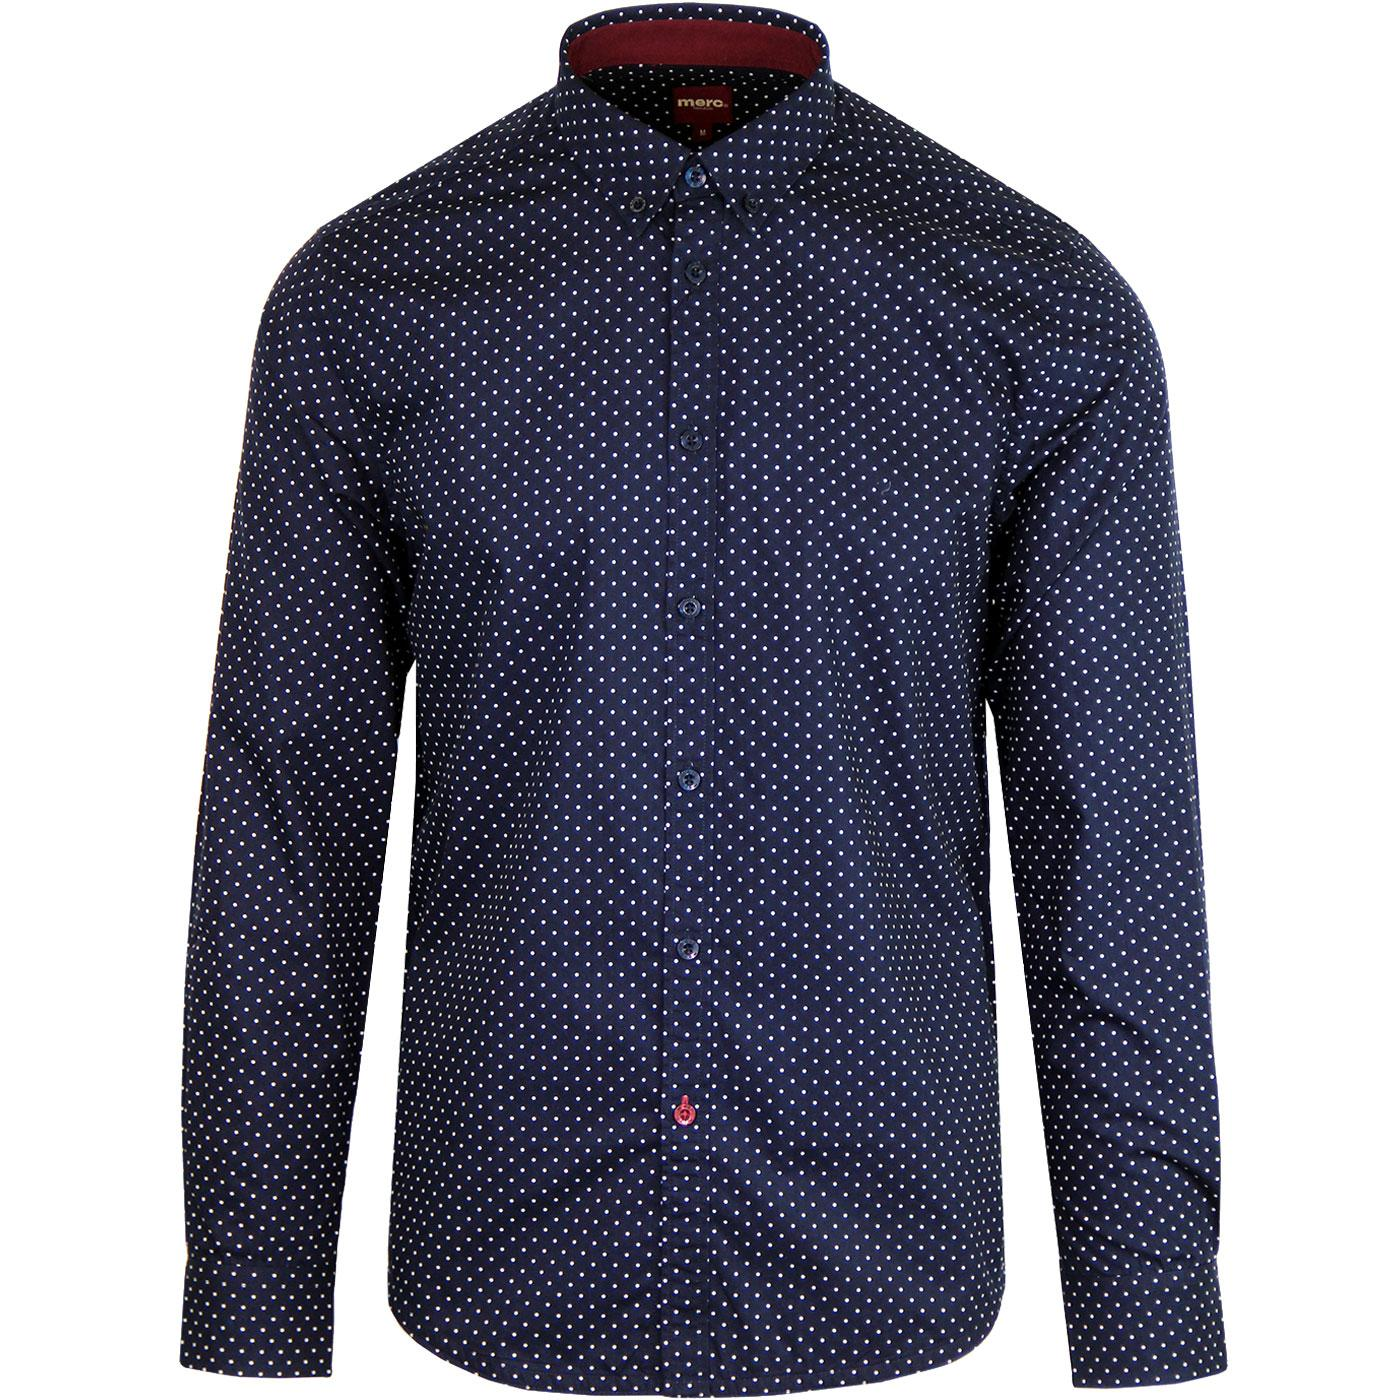 Siegel MERC Retro Sixties Polka Dot Mod Shirt (N)